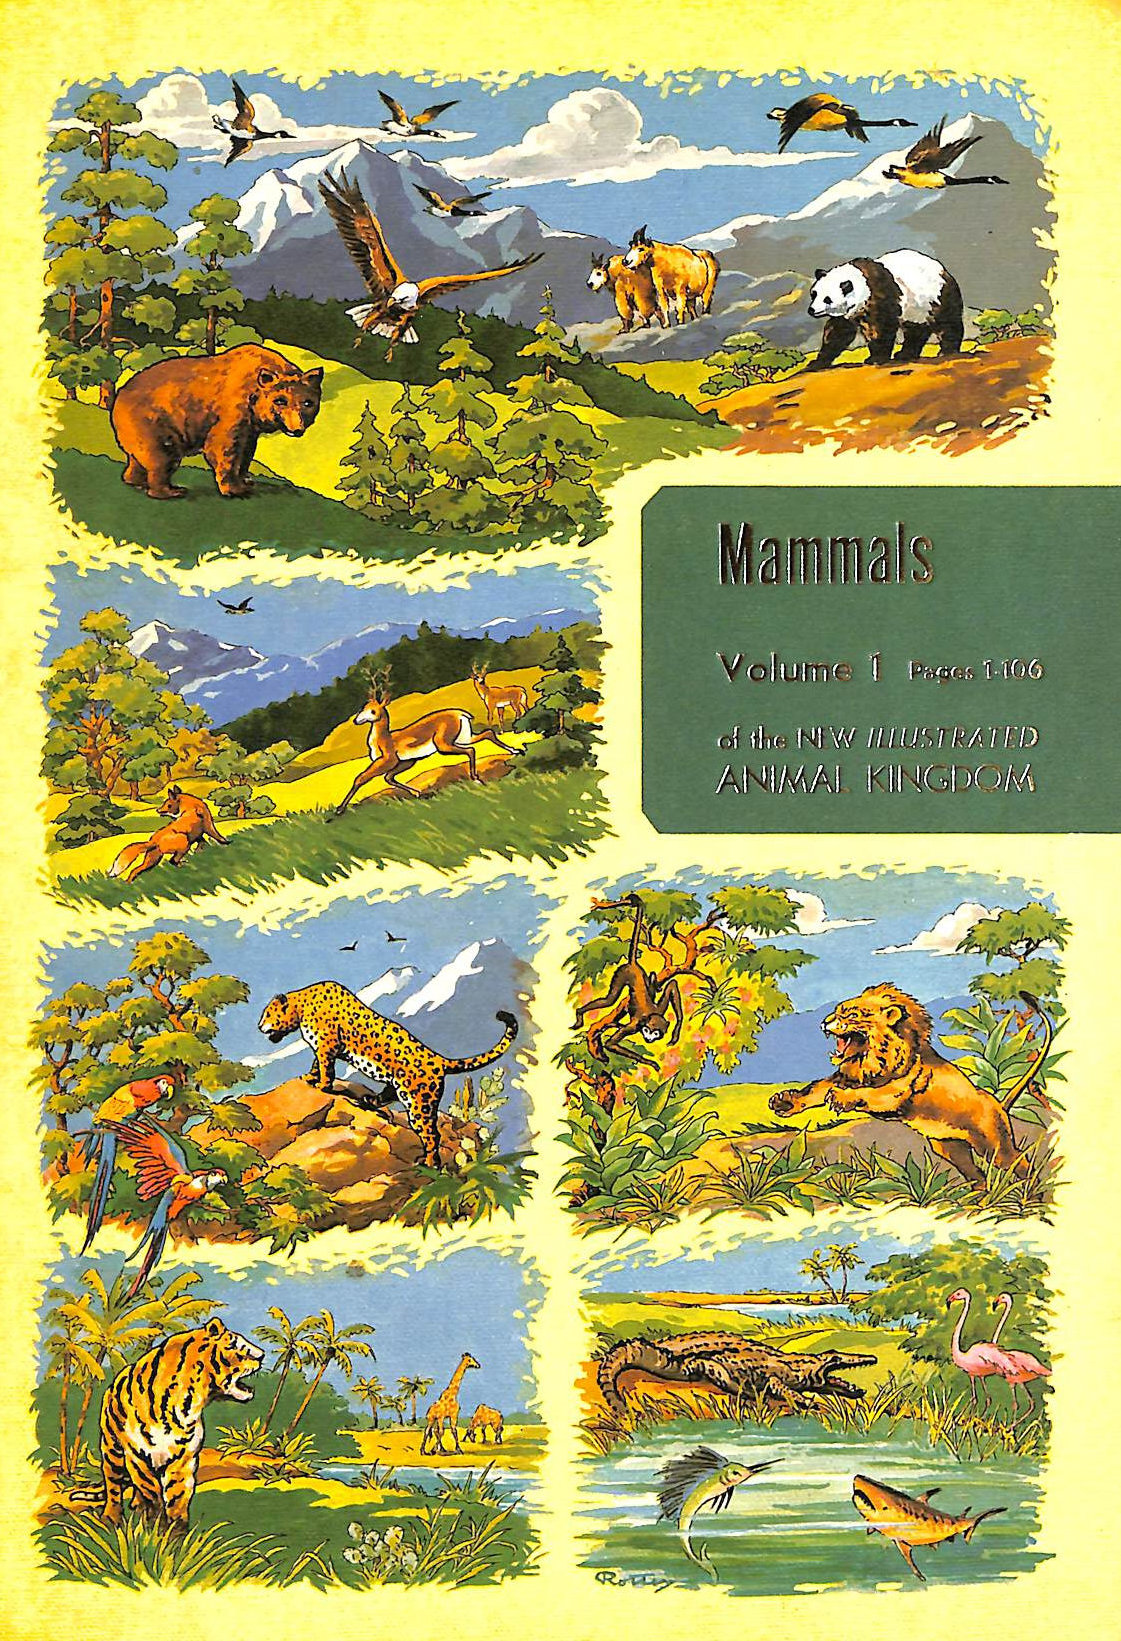 Image for Mammals Volume 1 of the new illustrated Animal Kingdom